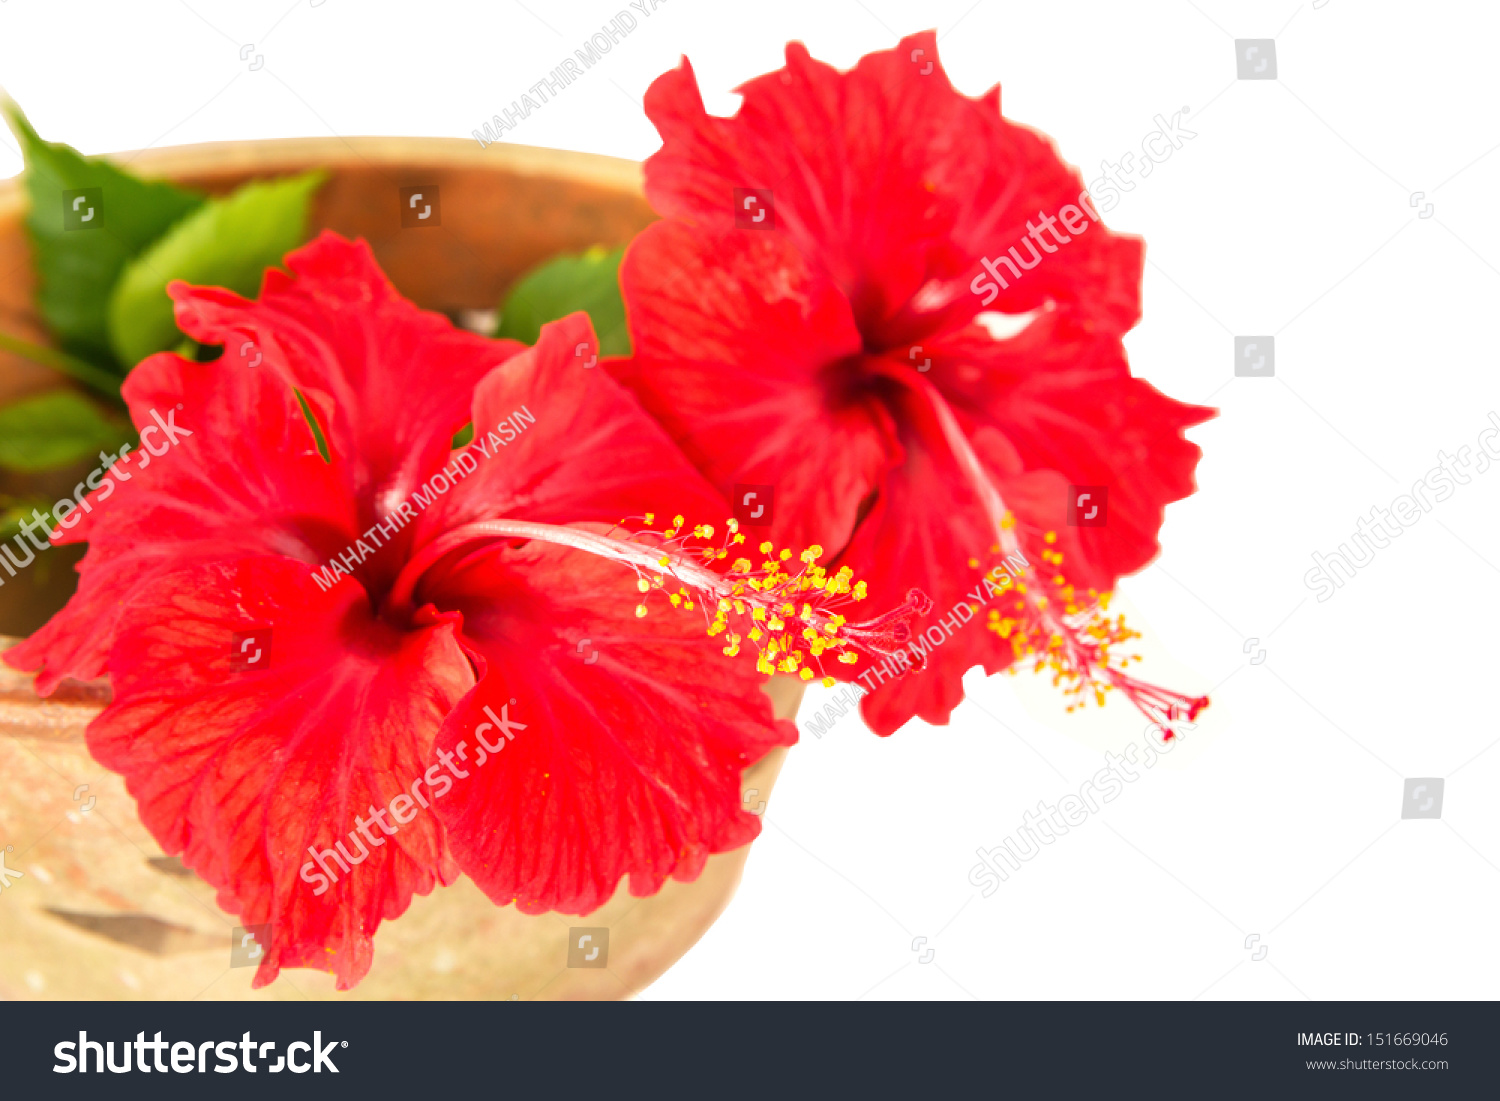 Red Hibiscus Flower White Background Stock Photo (Edit Now ...